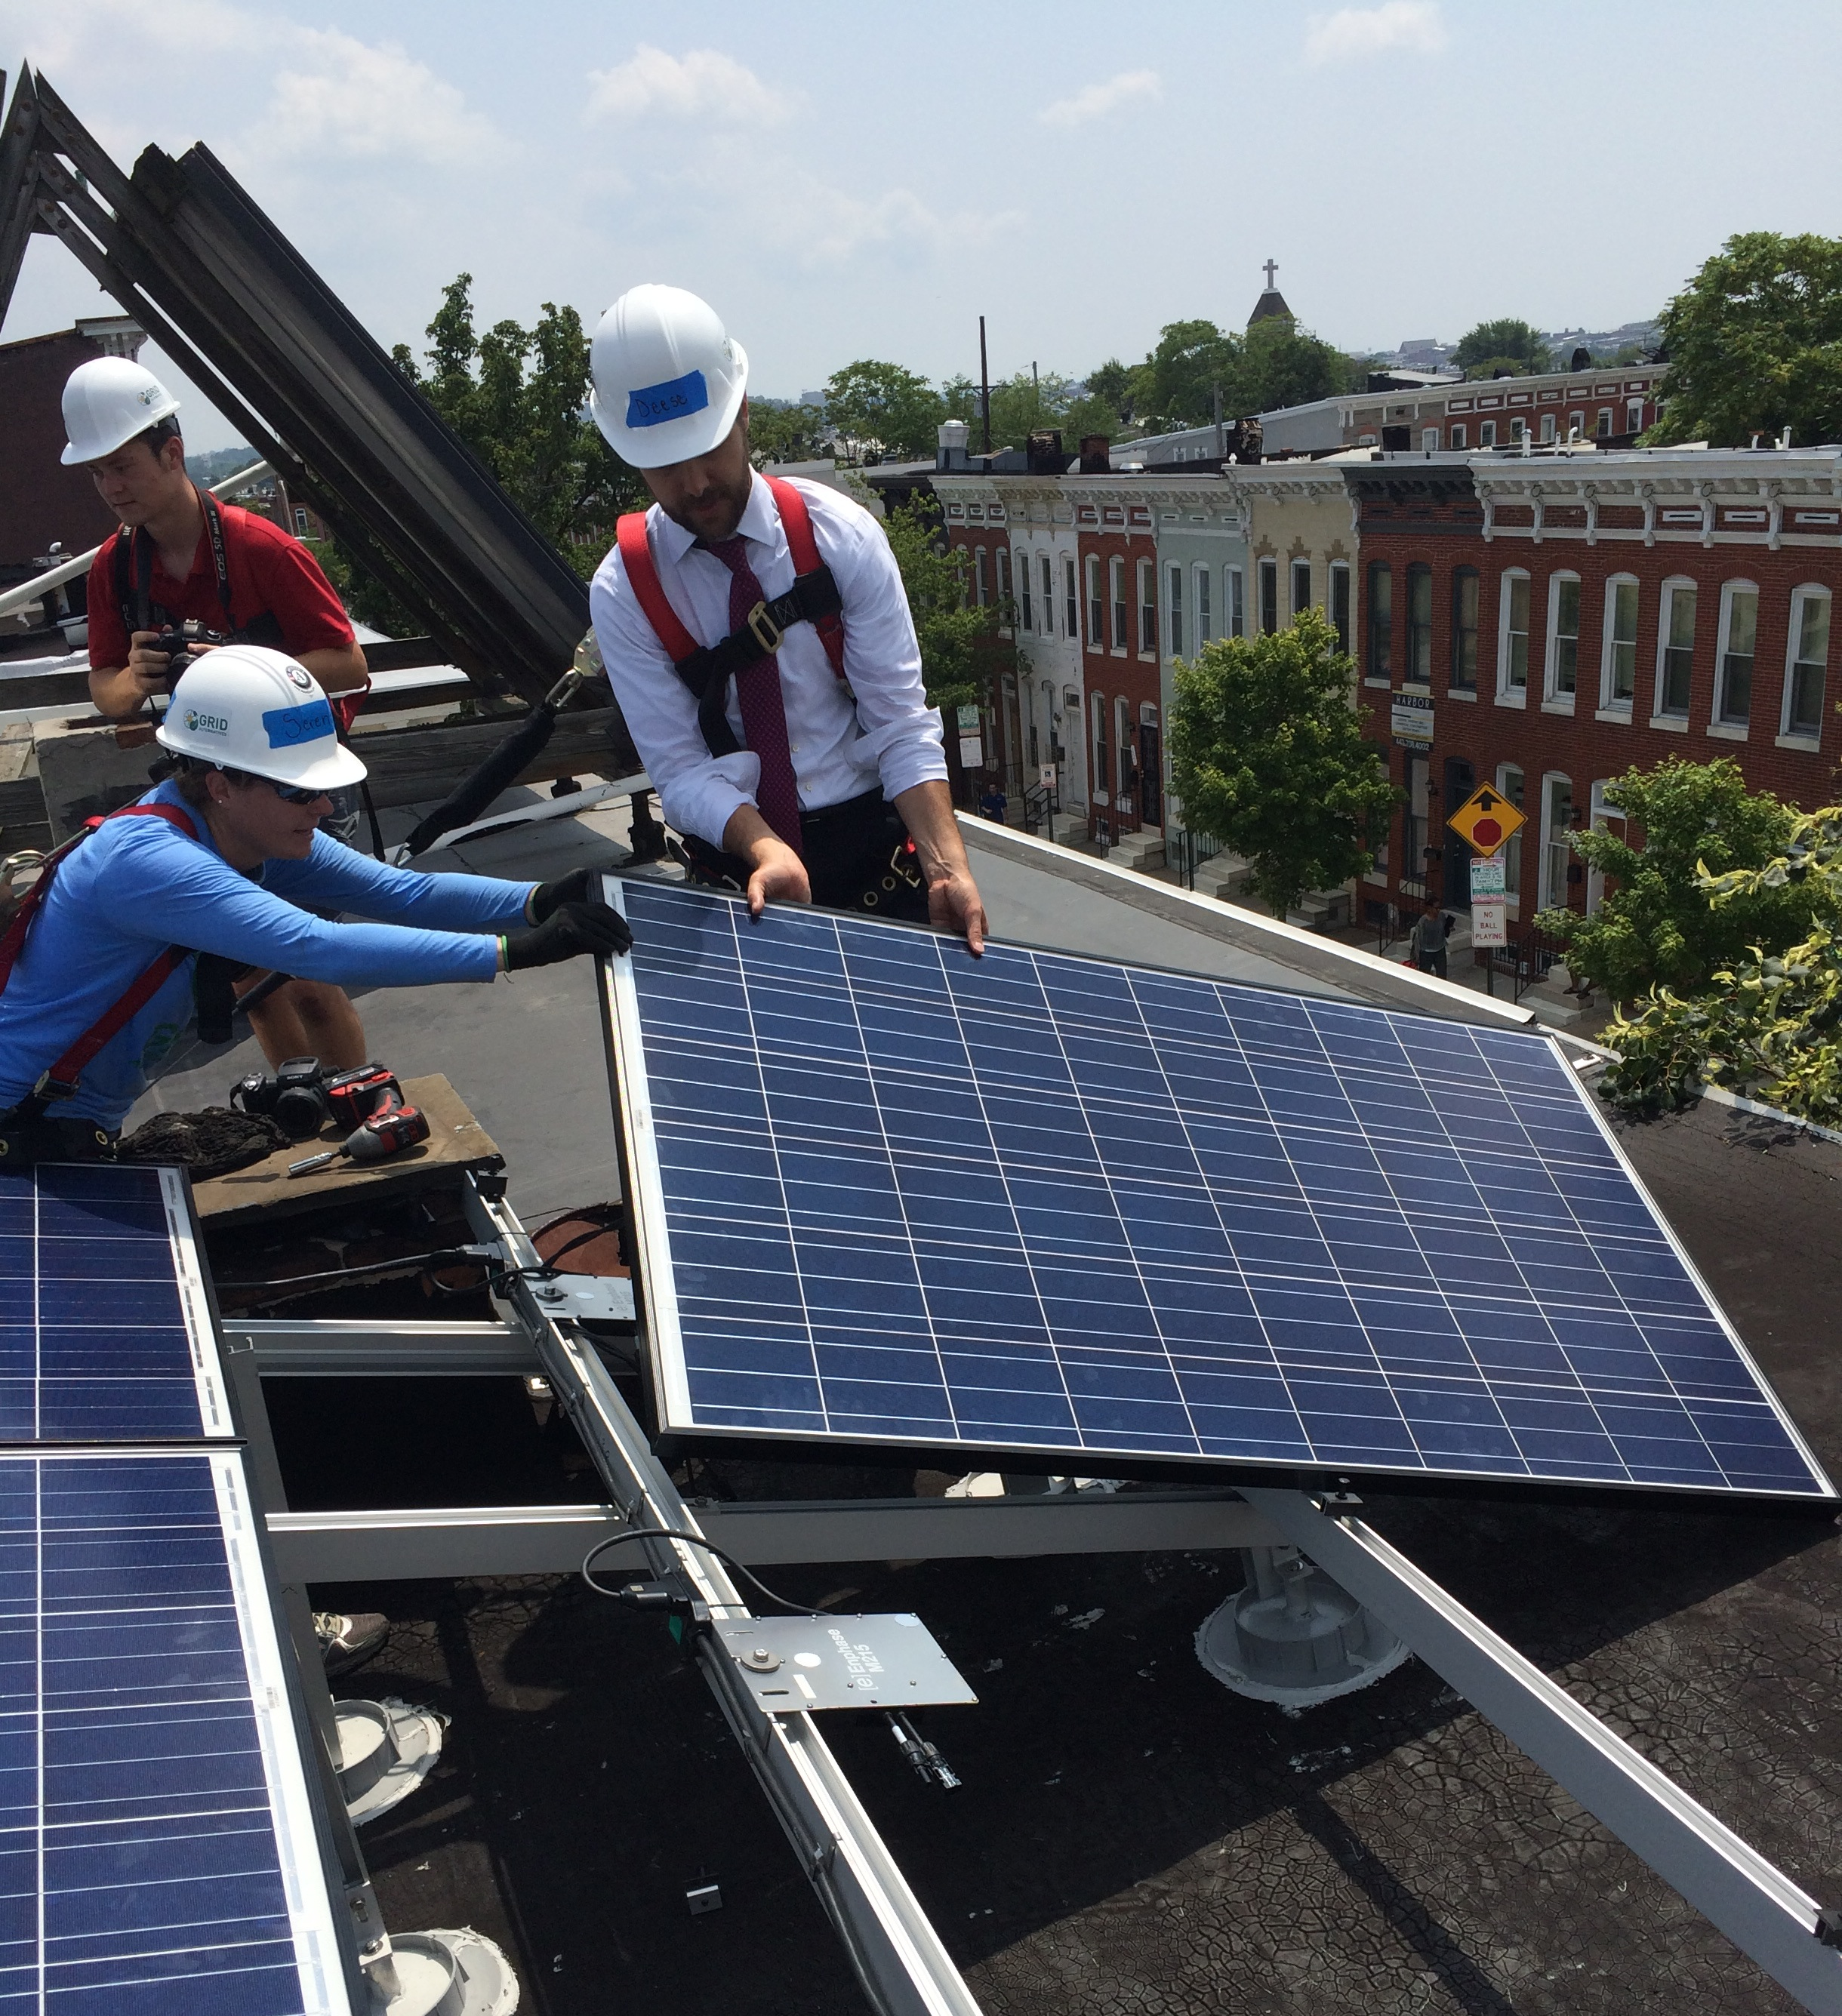 Senior Advisor to the President Brian Deese installing solar panels on a roof in Baltimore